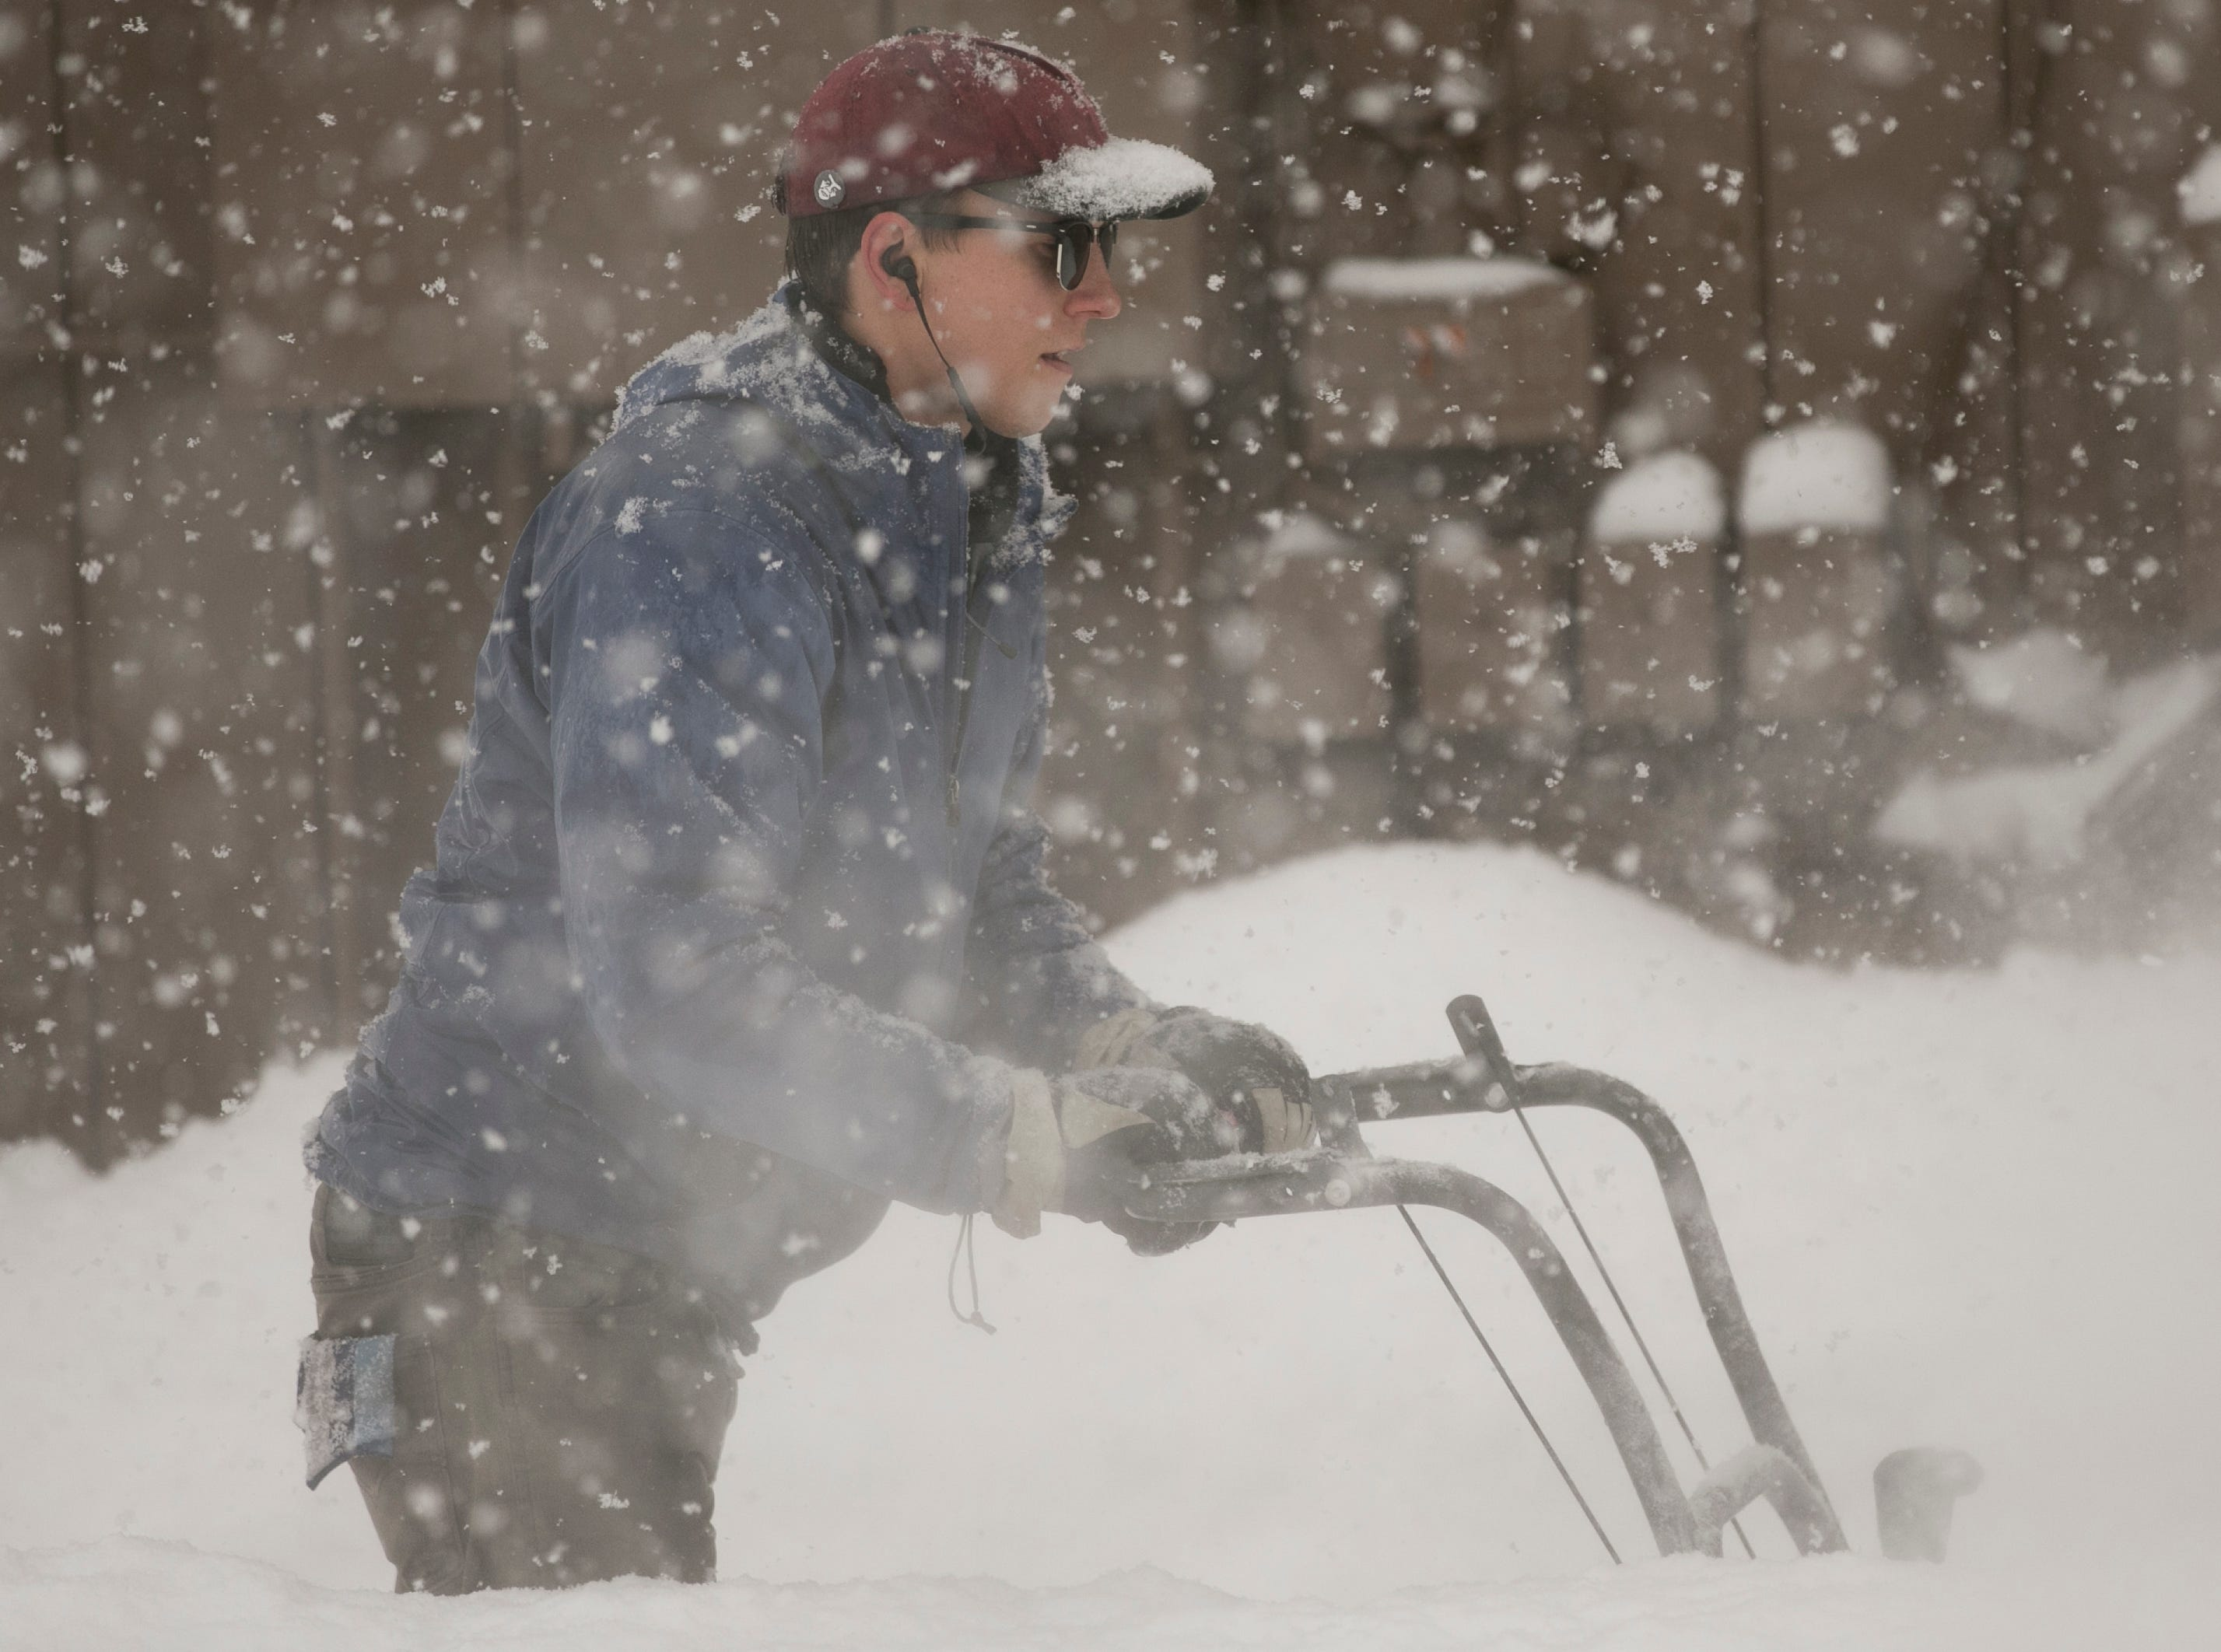 Dustin Brady cleans sidewalks in the snow near Northern Arizona University in Flagstaff on Feb. 21, 2019. A storm was expected to bring 20-30 inches of snow around northern Arizona through Friday.